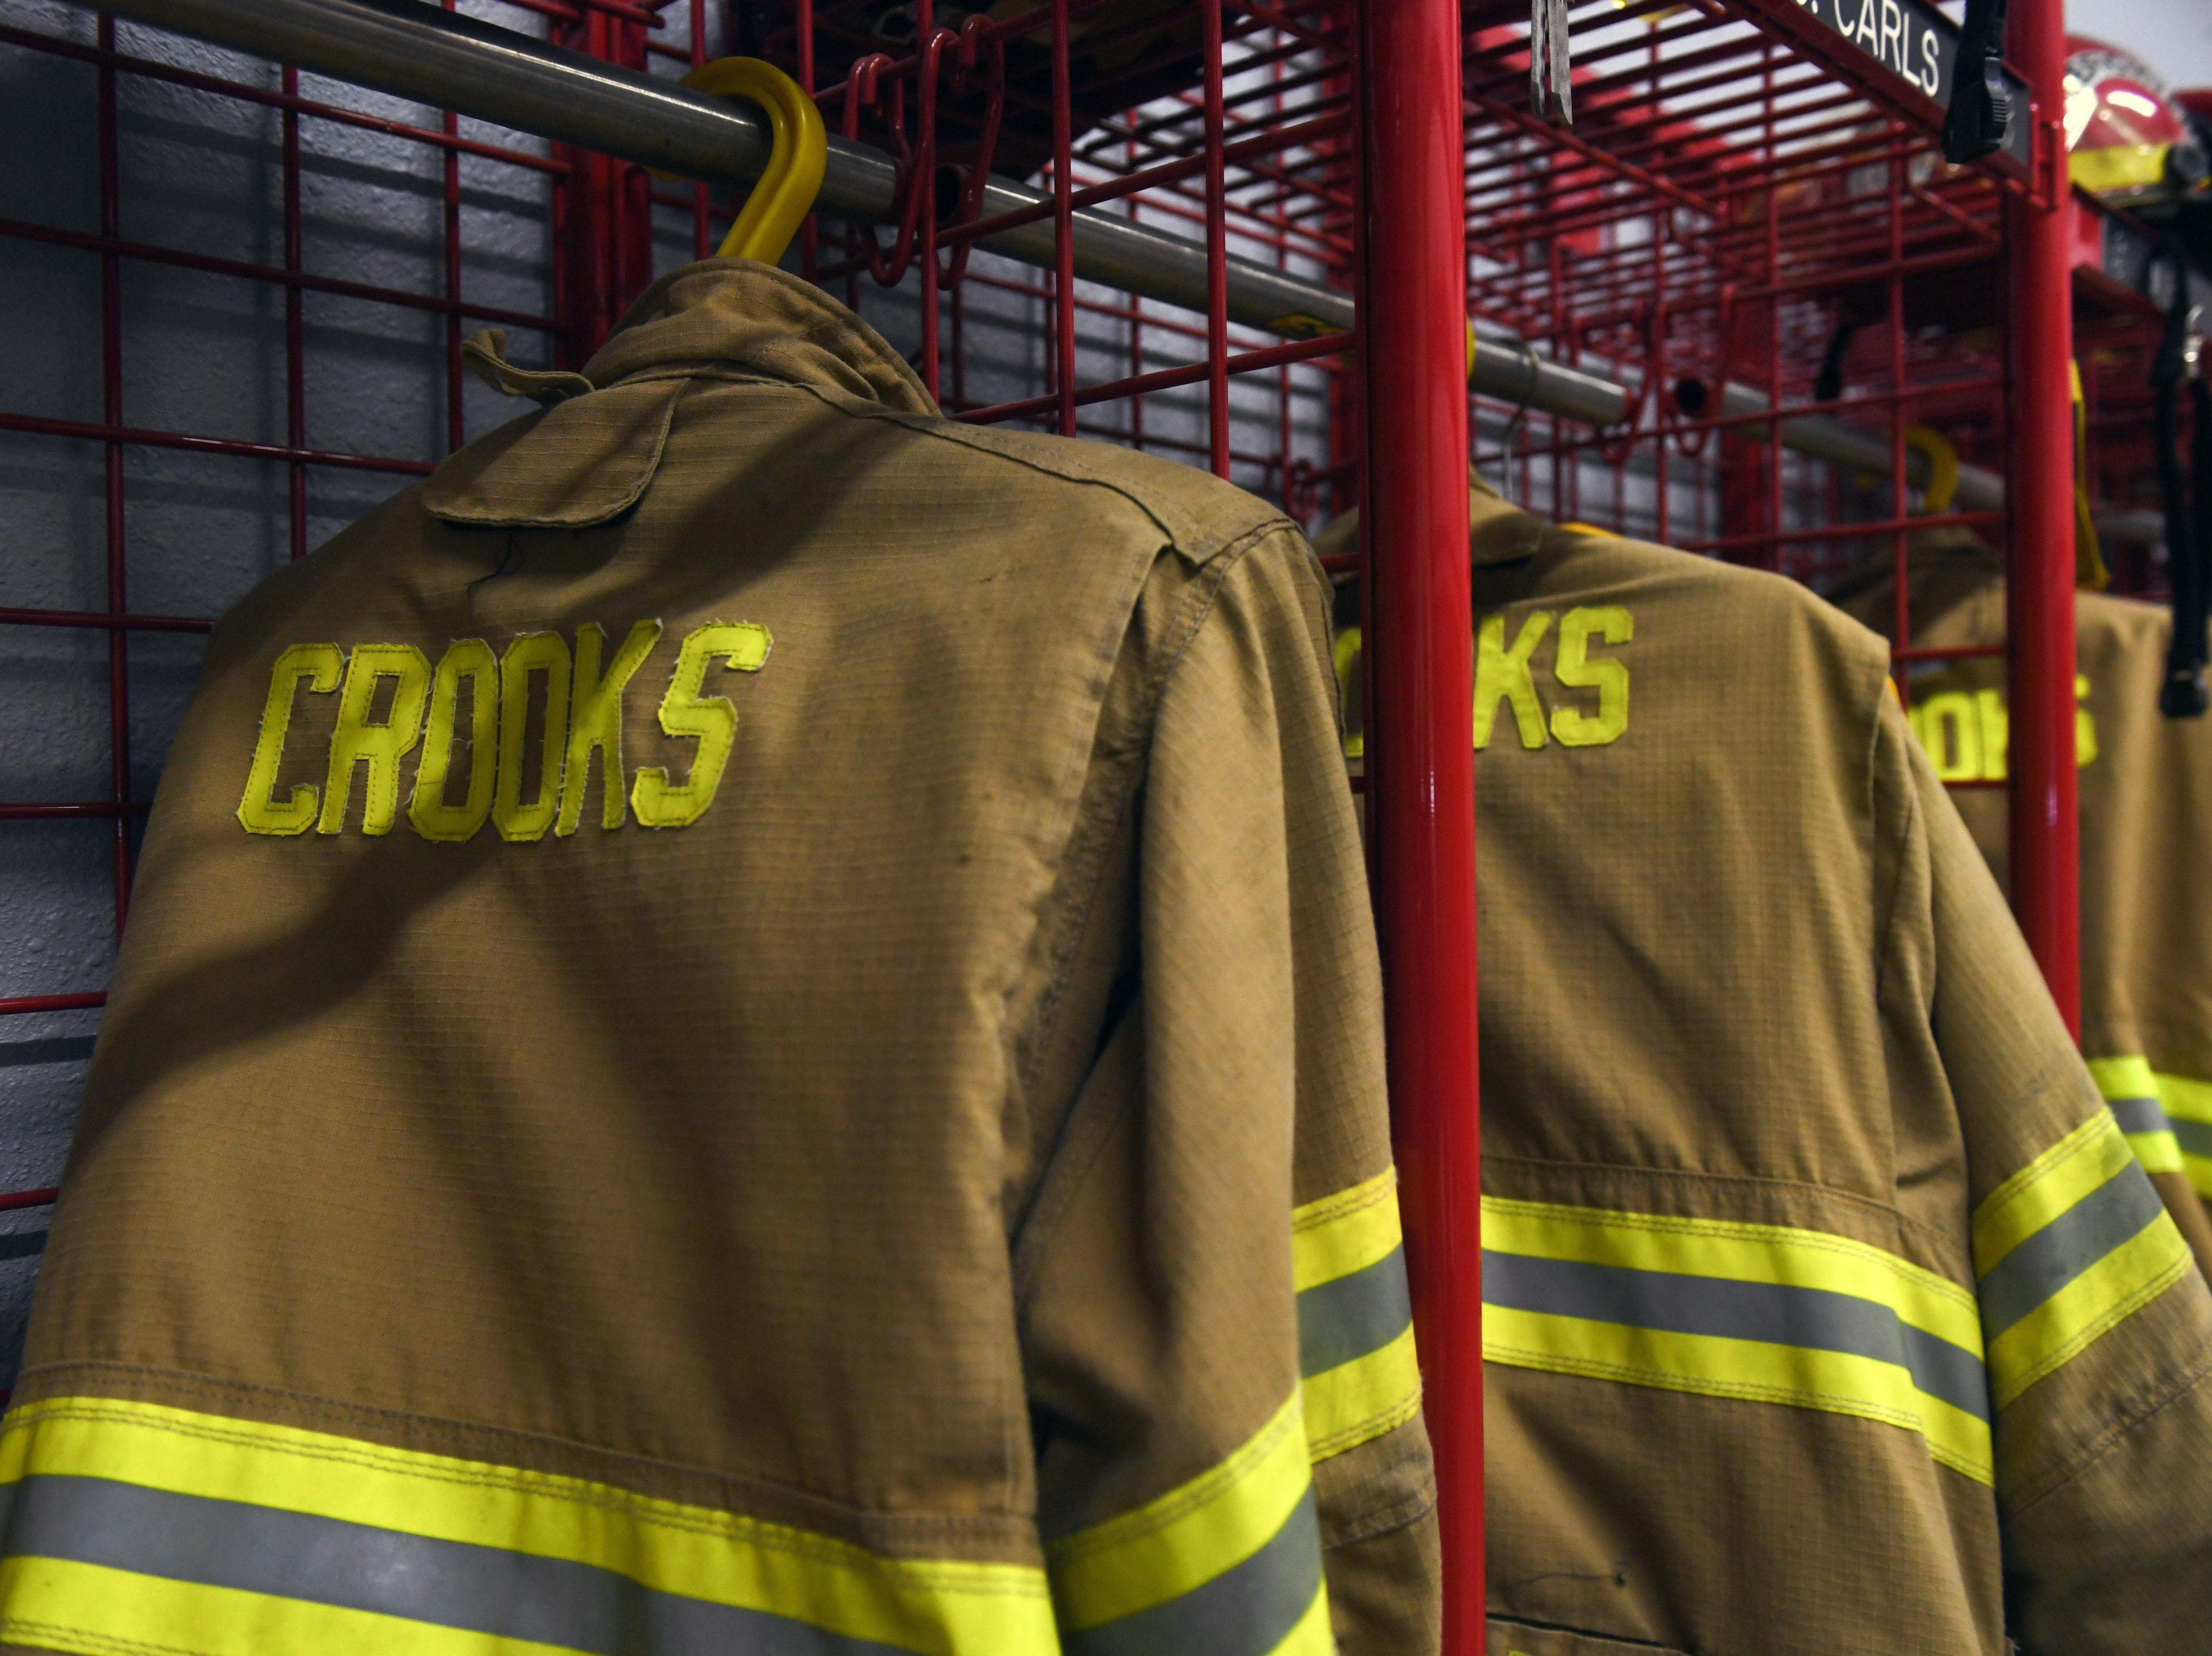 Gear for the volunteer firefighters hangs in cubbies at the Crooks Fire Department on Tuesday, May 7. Volunteers do not work in shifts at the department, but respond to calls from wherever they are throughout the day.